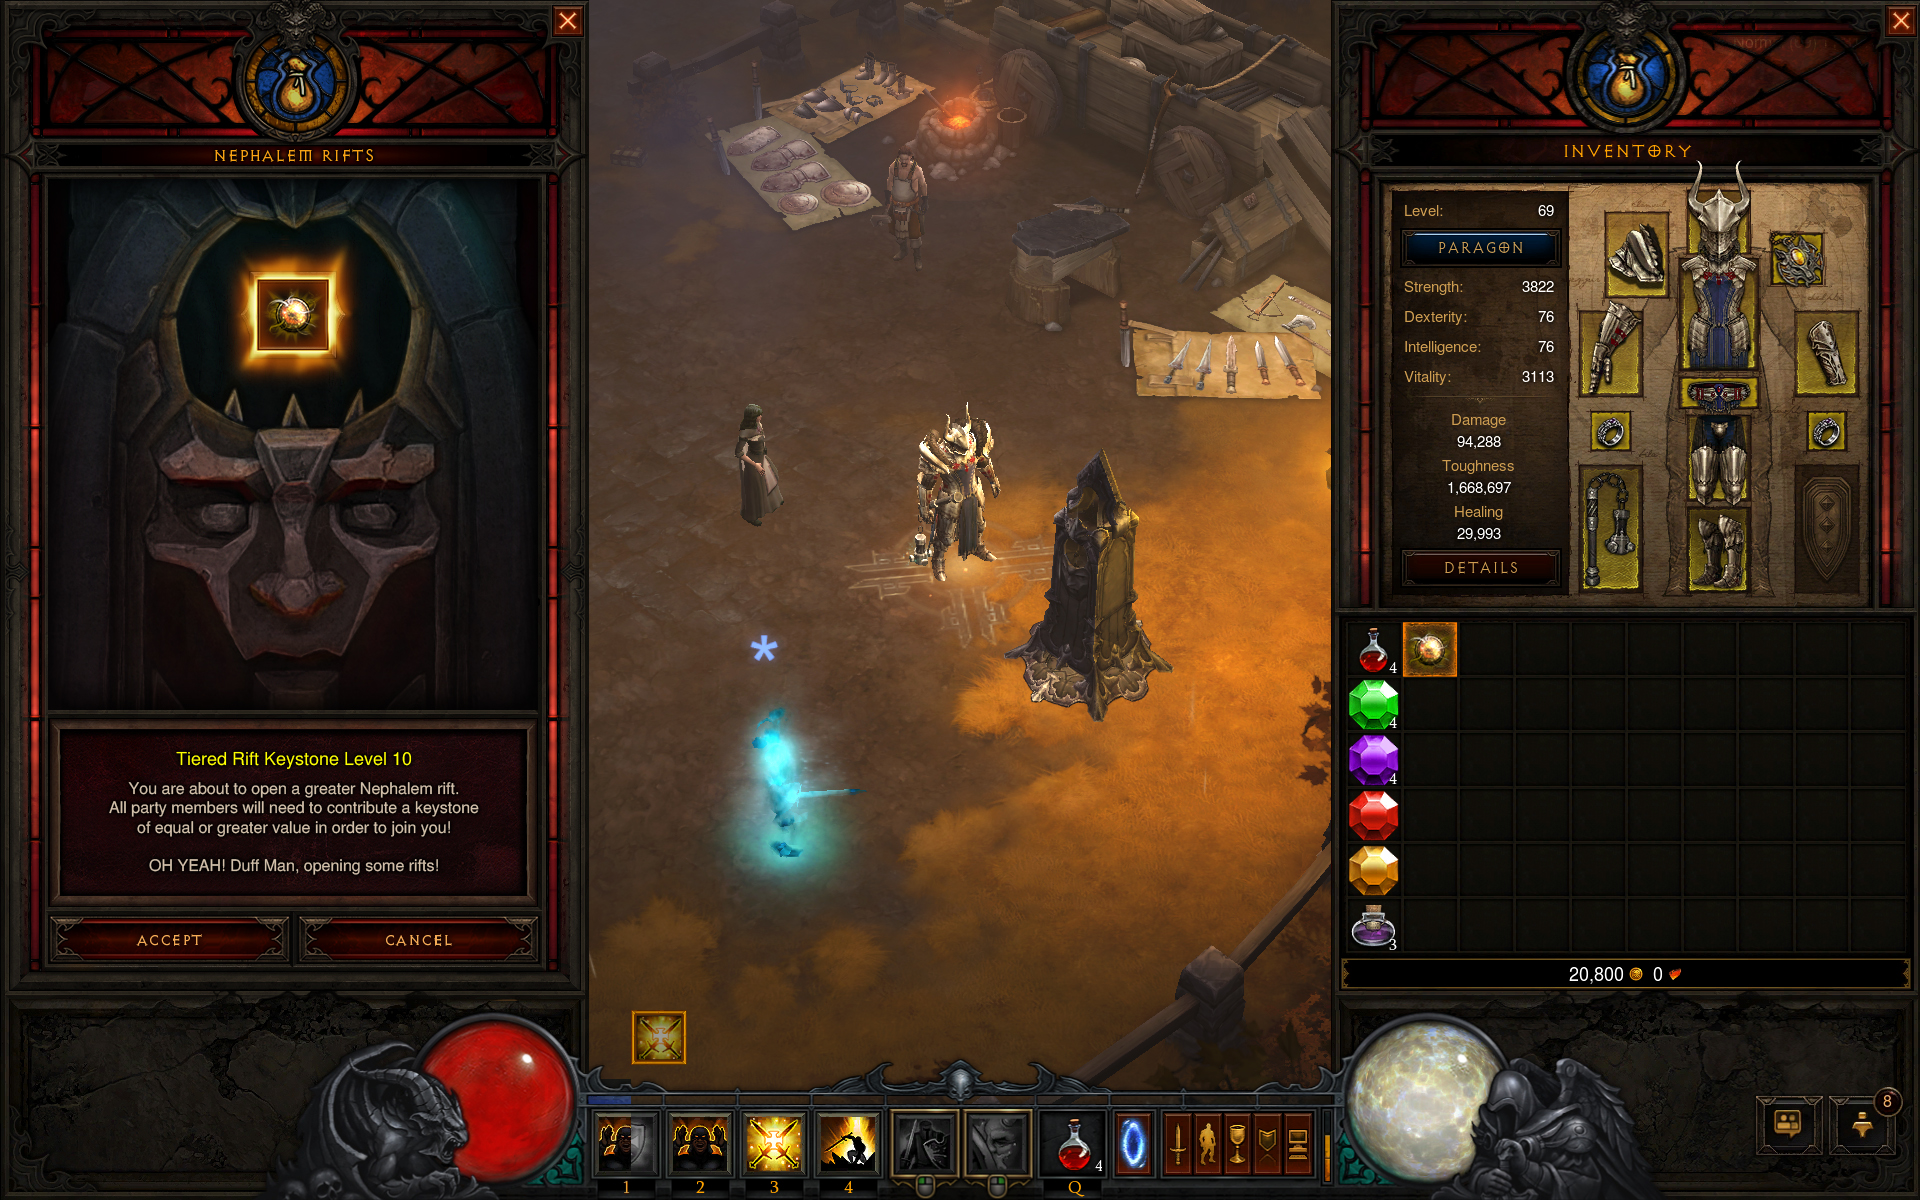 Diablo 3 naked run challenge requirements xxx scene